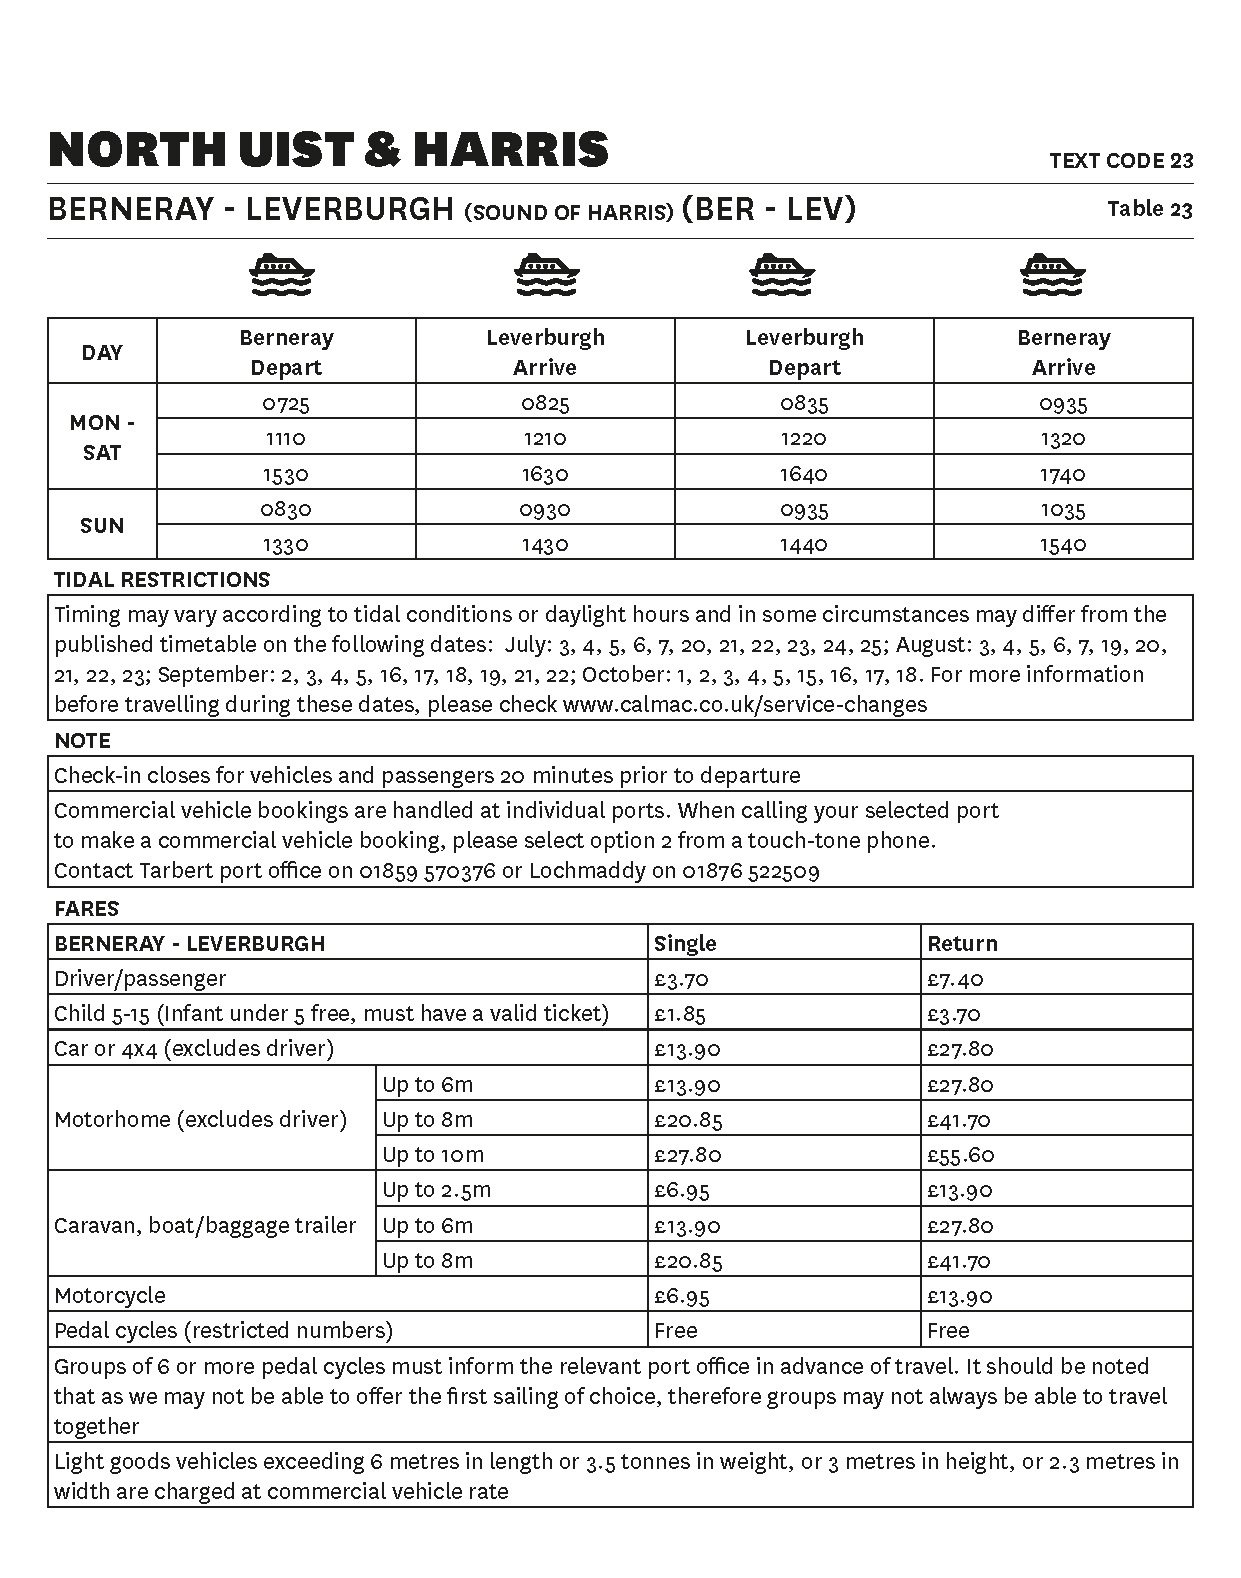 Table 23 Berneray - Leverburgh - Temporary timetable - This image is currently not accessible to screen readers. Please phone 0800 066 5000 for timetable details